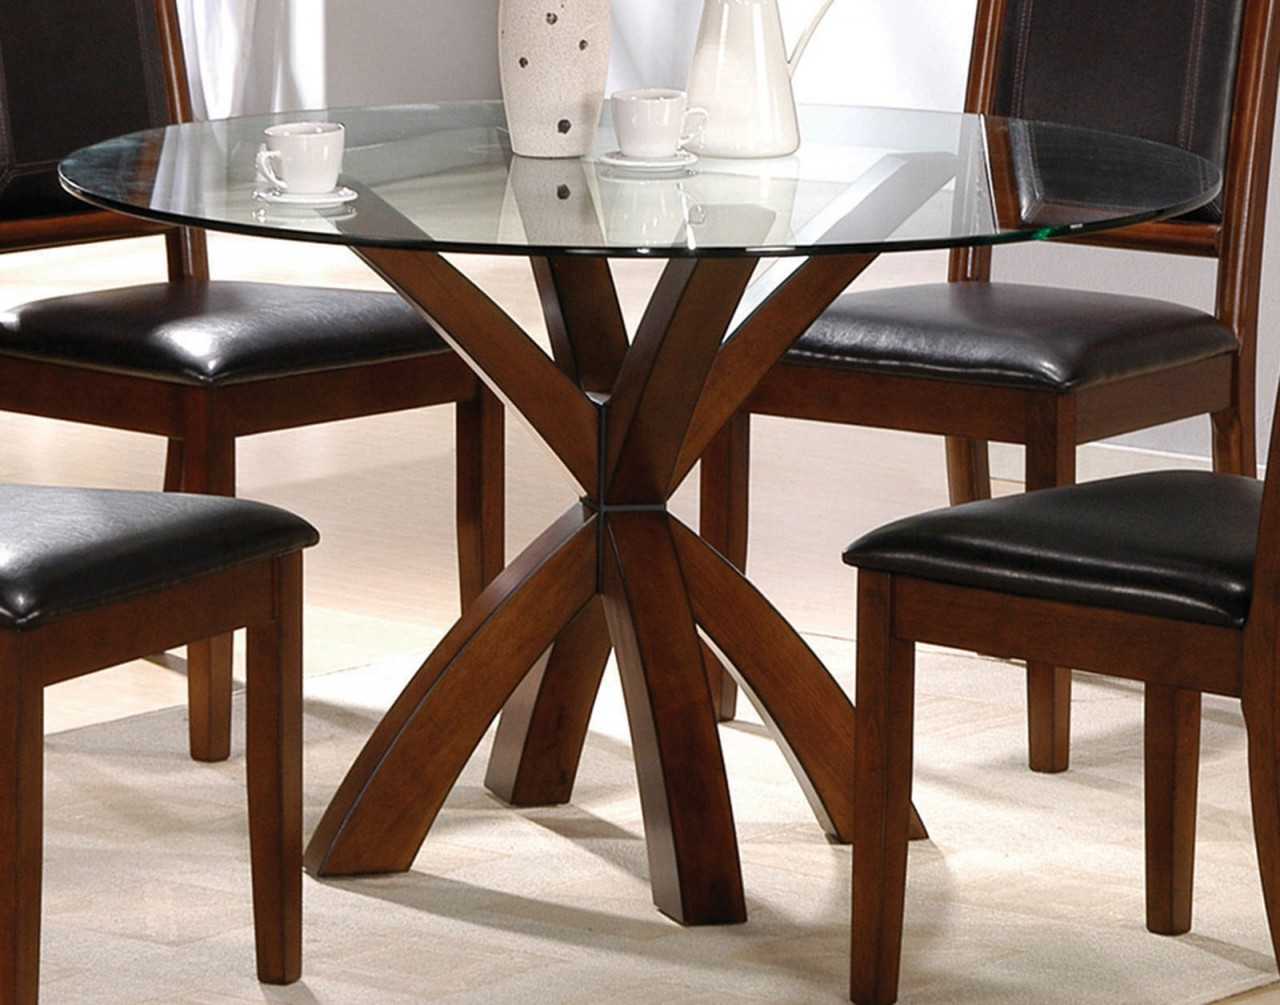 Dining room table bases for glass tops - Interior Furniture Of Round Dining Table With Glass On Top Surface And Black Four Chairs